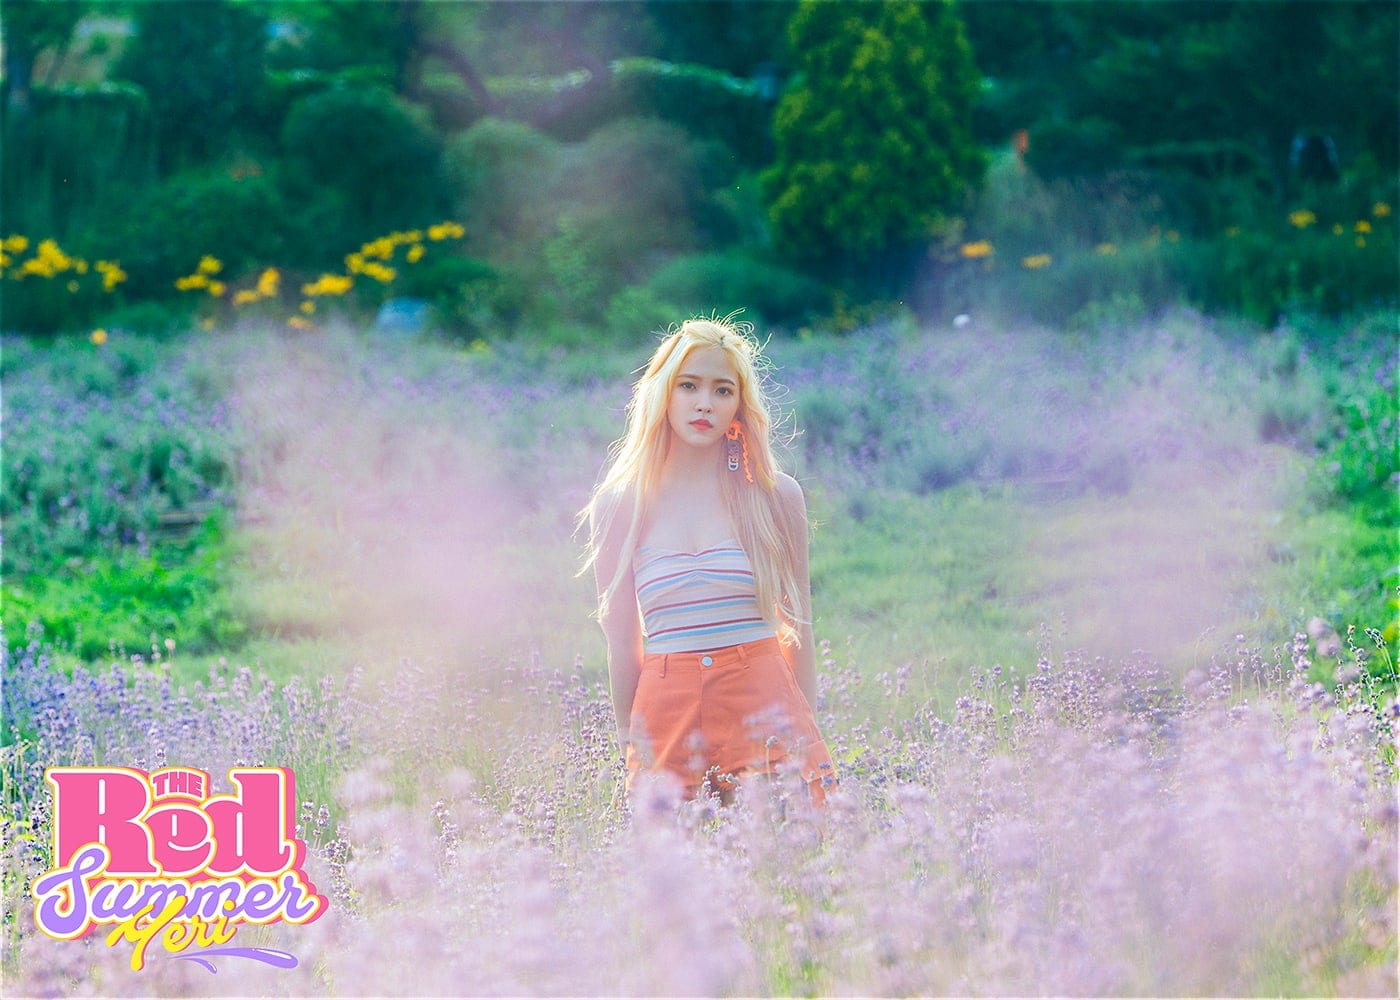 Red Velvet Releases Summery Teaser Images For Member Yeri